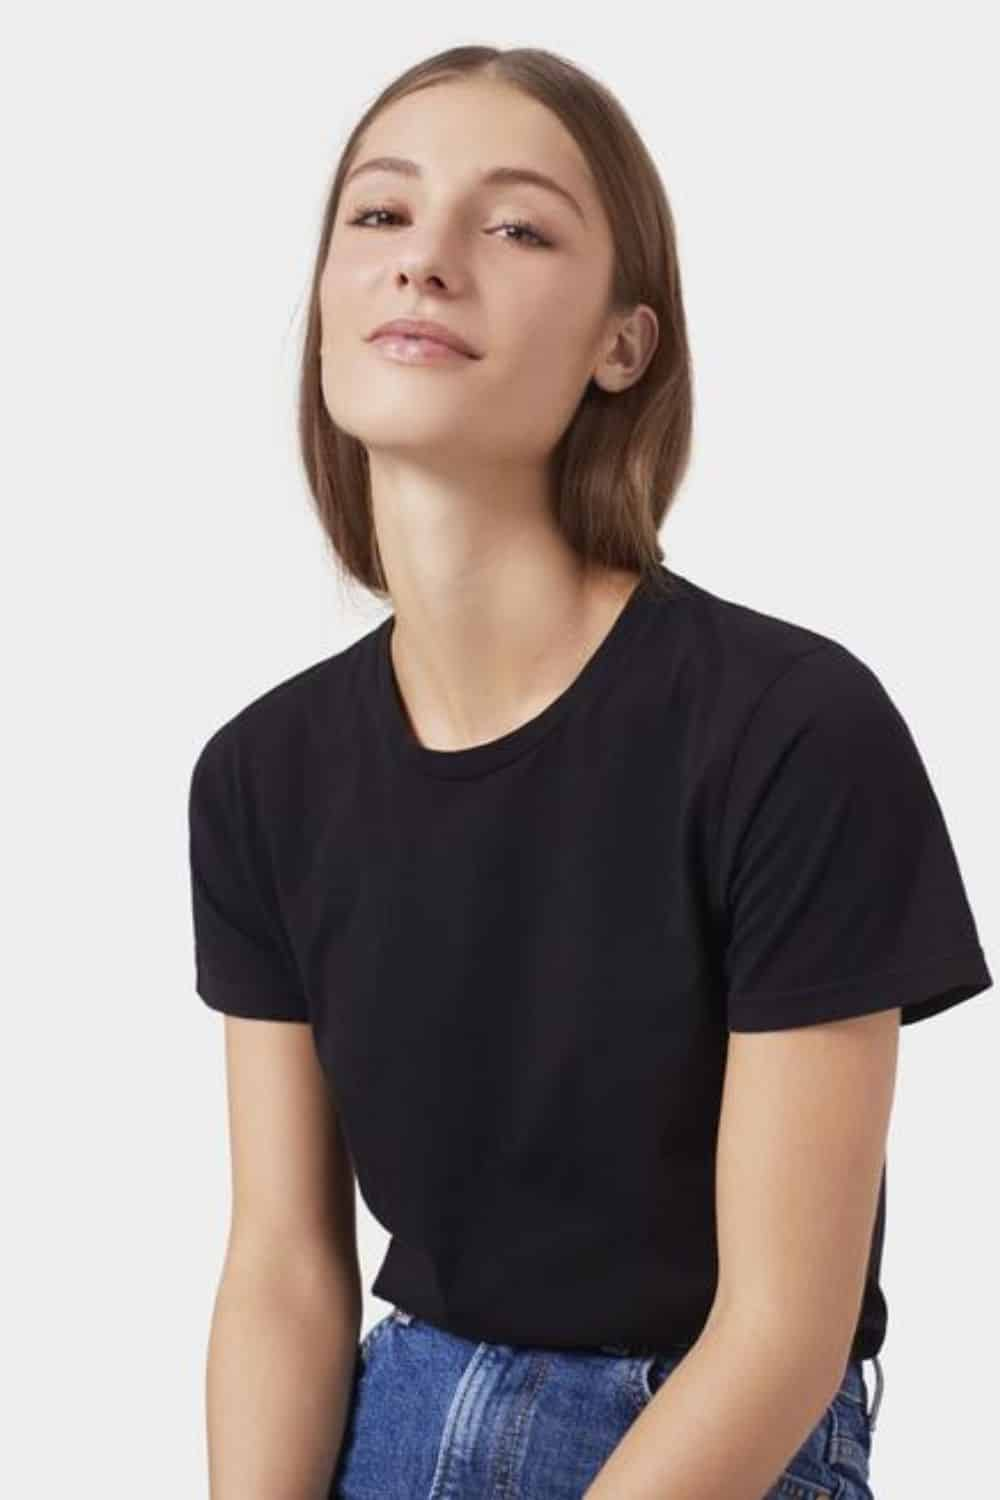 Aside from feeling soft and breathable (almost like being naked), organic cotton t-shirts have a minimal—and in some cases positive—impact on our planet. Image by Colorful Standard #organiccottontshirts #sustainablejungle